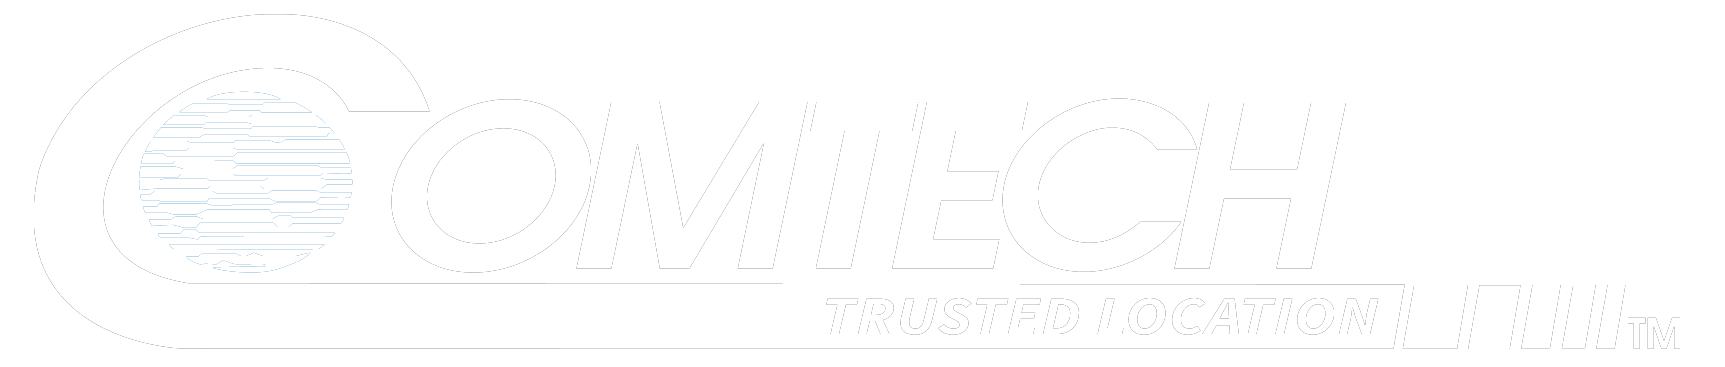 Comtech_ENT_Logo_trusted location white